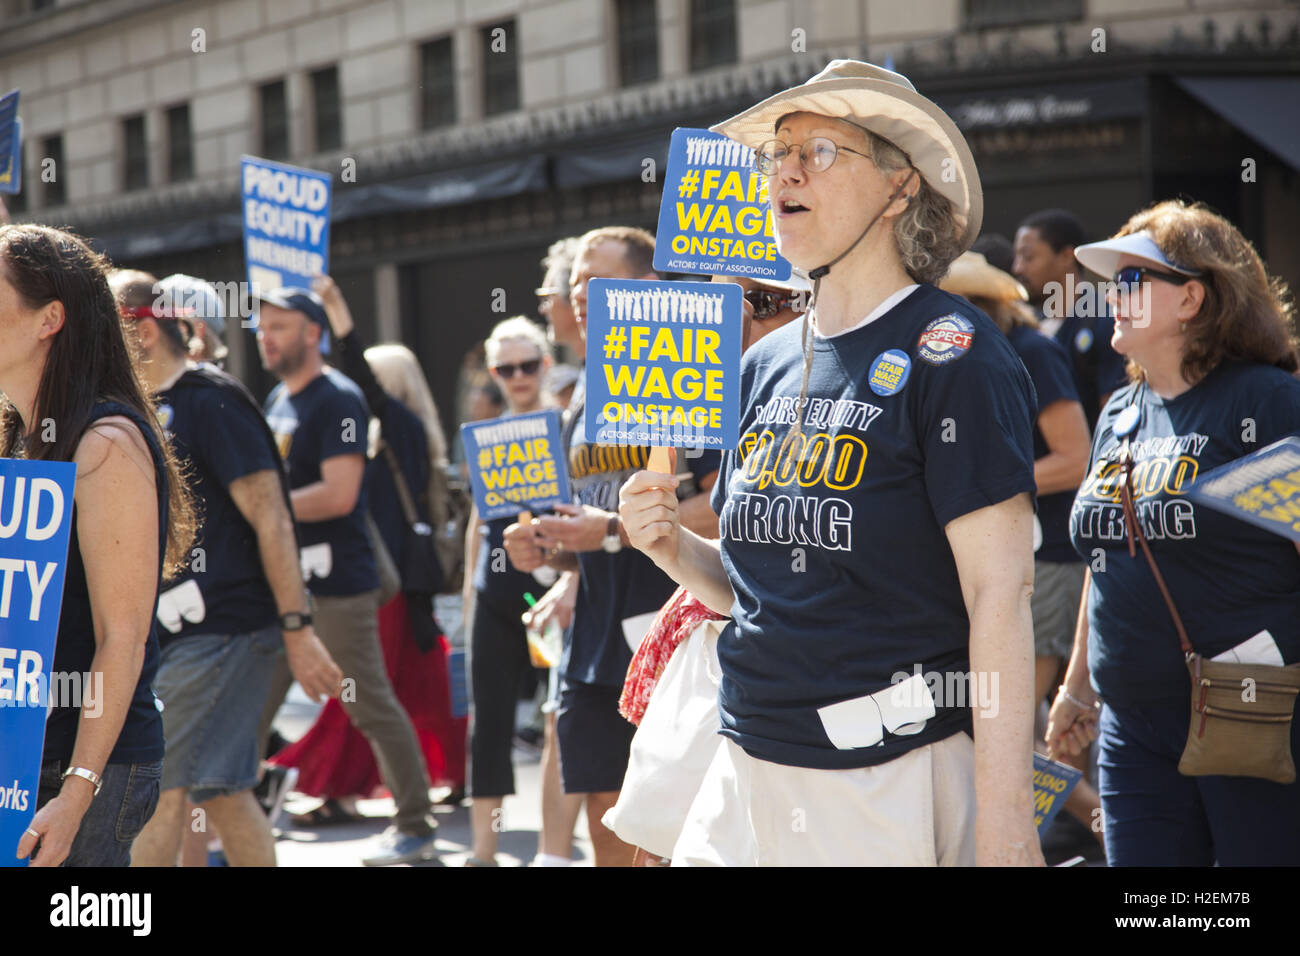 Actors Equity Association members march in the Labor Day Parade up 5th Avenue in New York City. - Stock Image